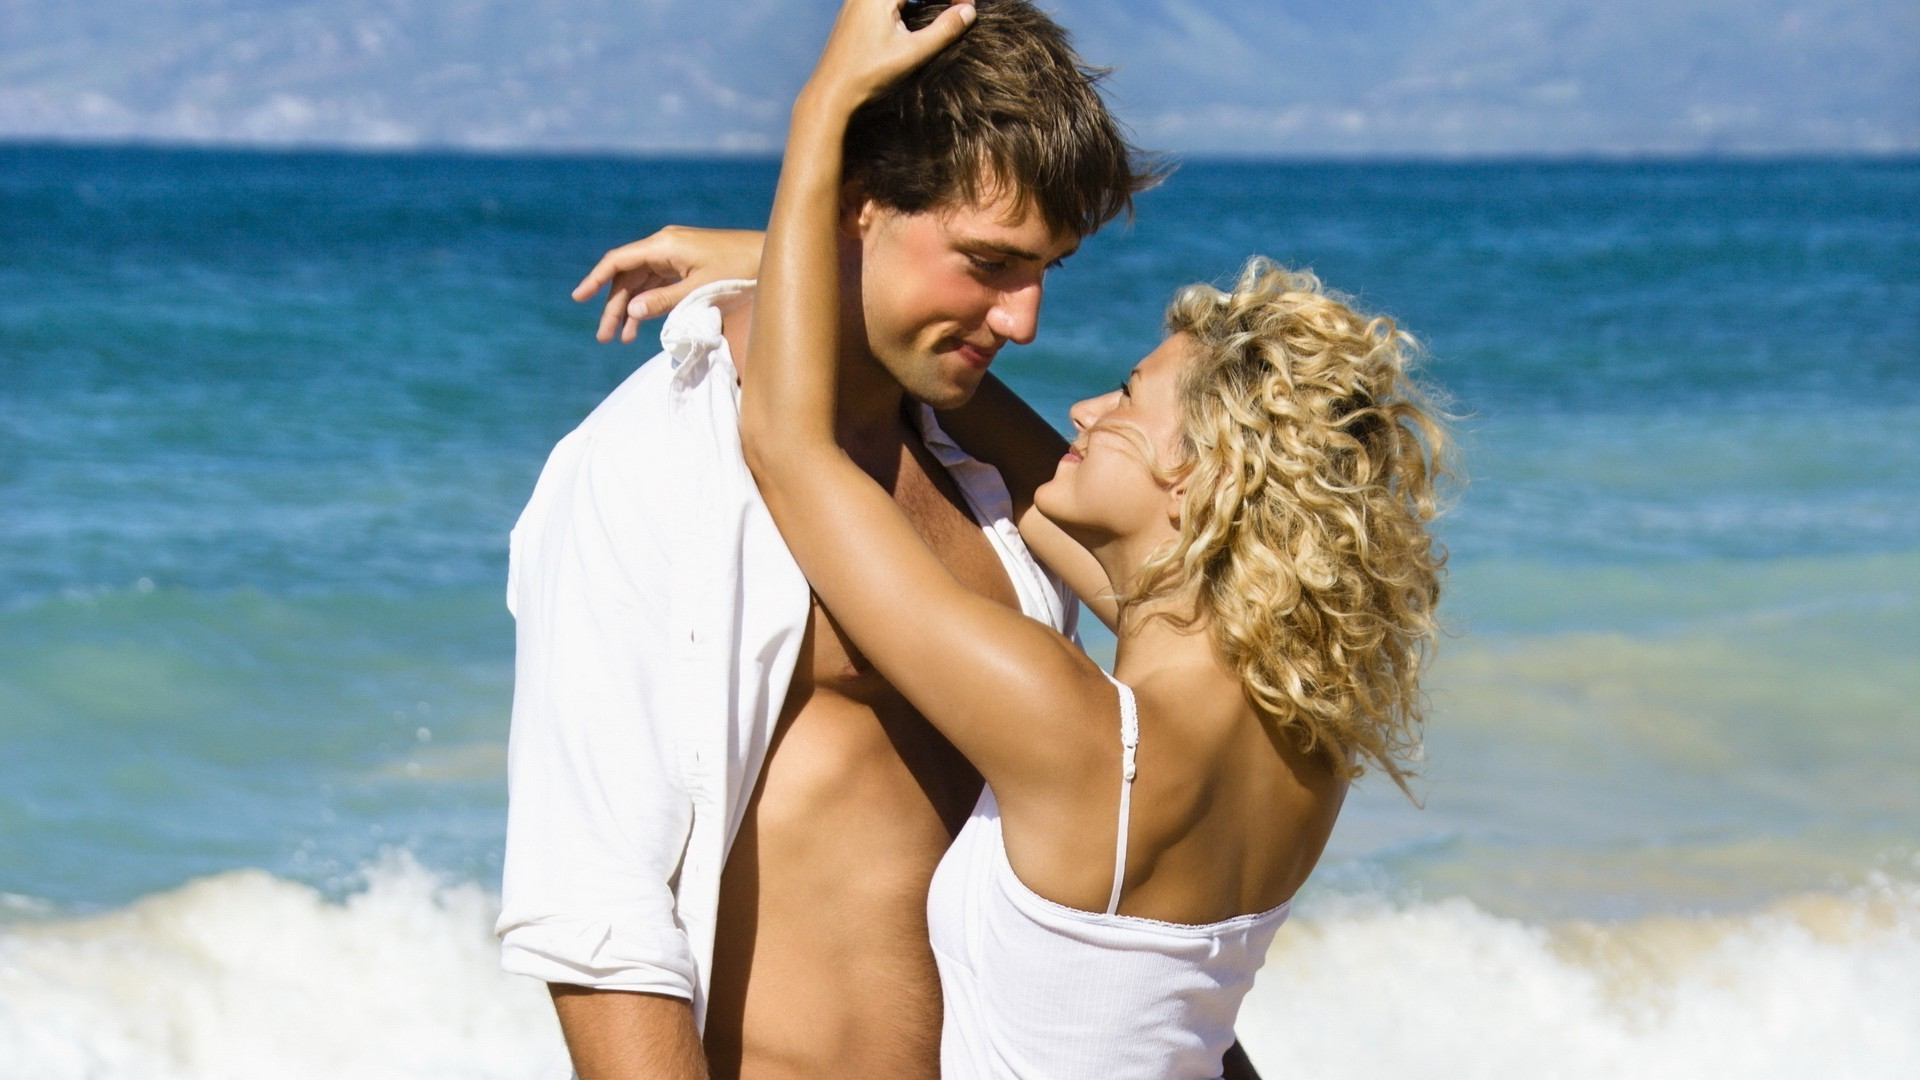 couples water summer beach sea romance togetherness woman love ocean leisure enjoyment seashore outdoors vacation sand travel relaxation fair weather affection recreation